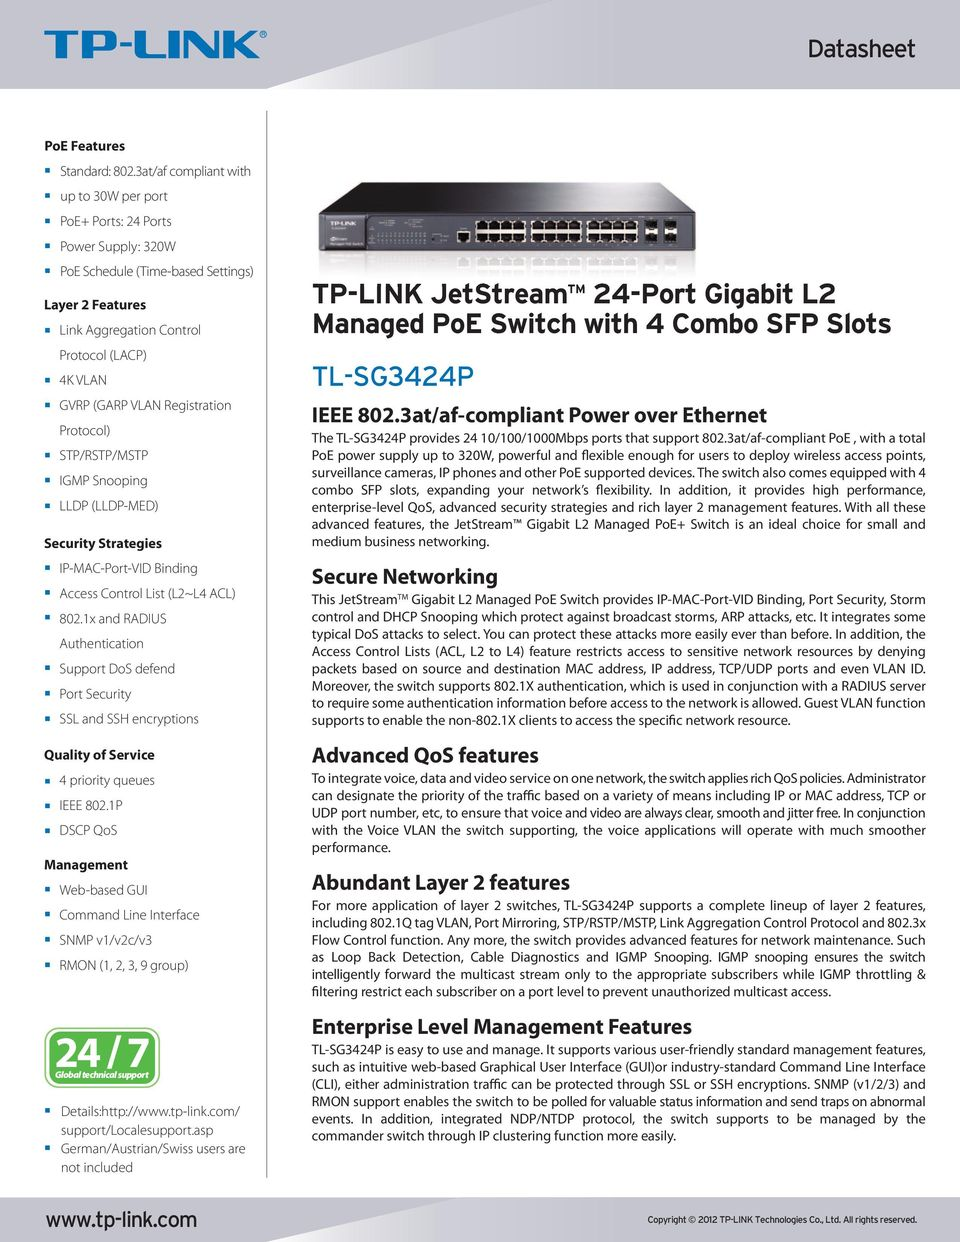 TP-LINK  24-Port Gigabit L2 Managed PoE Switch with 4 Combo